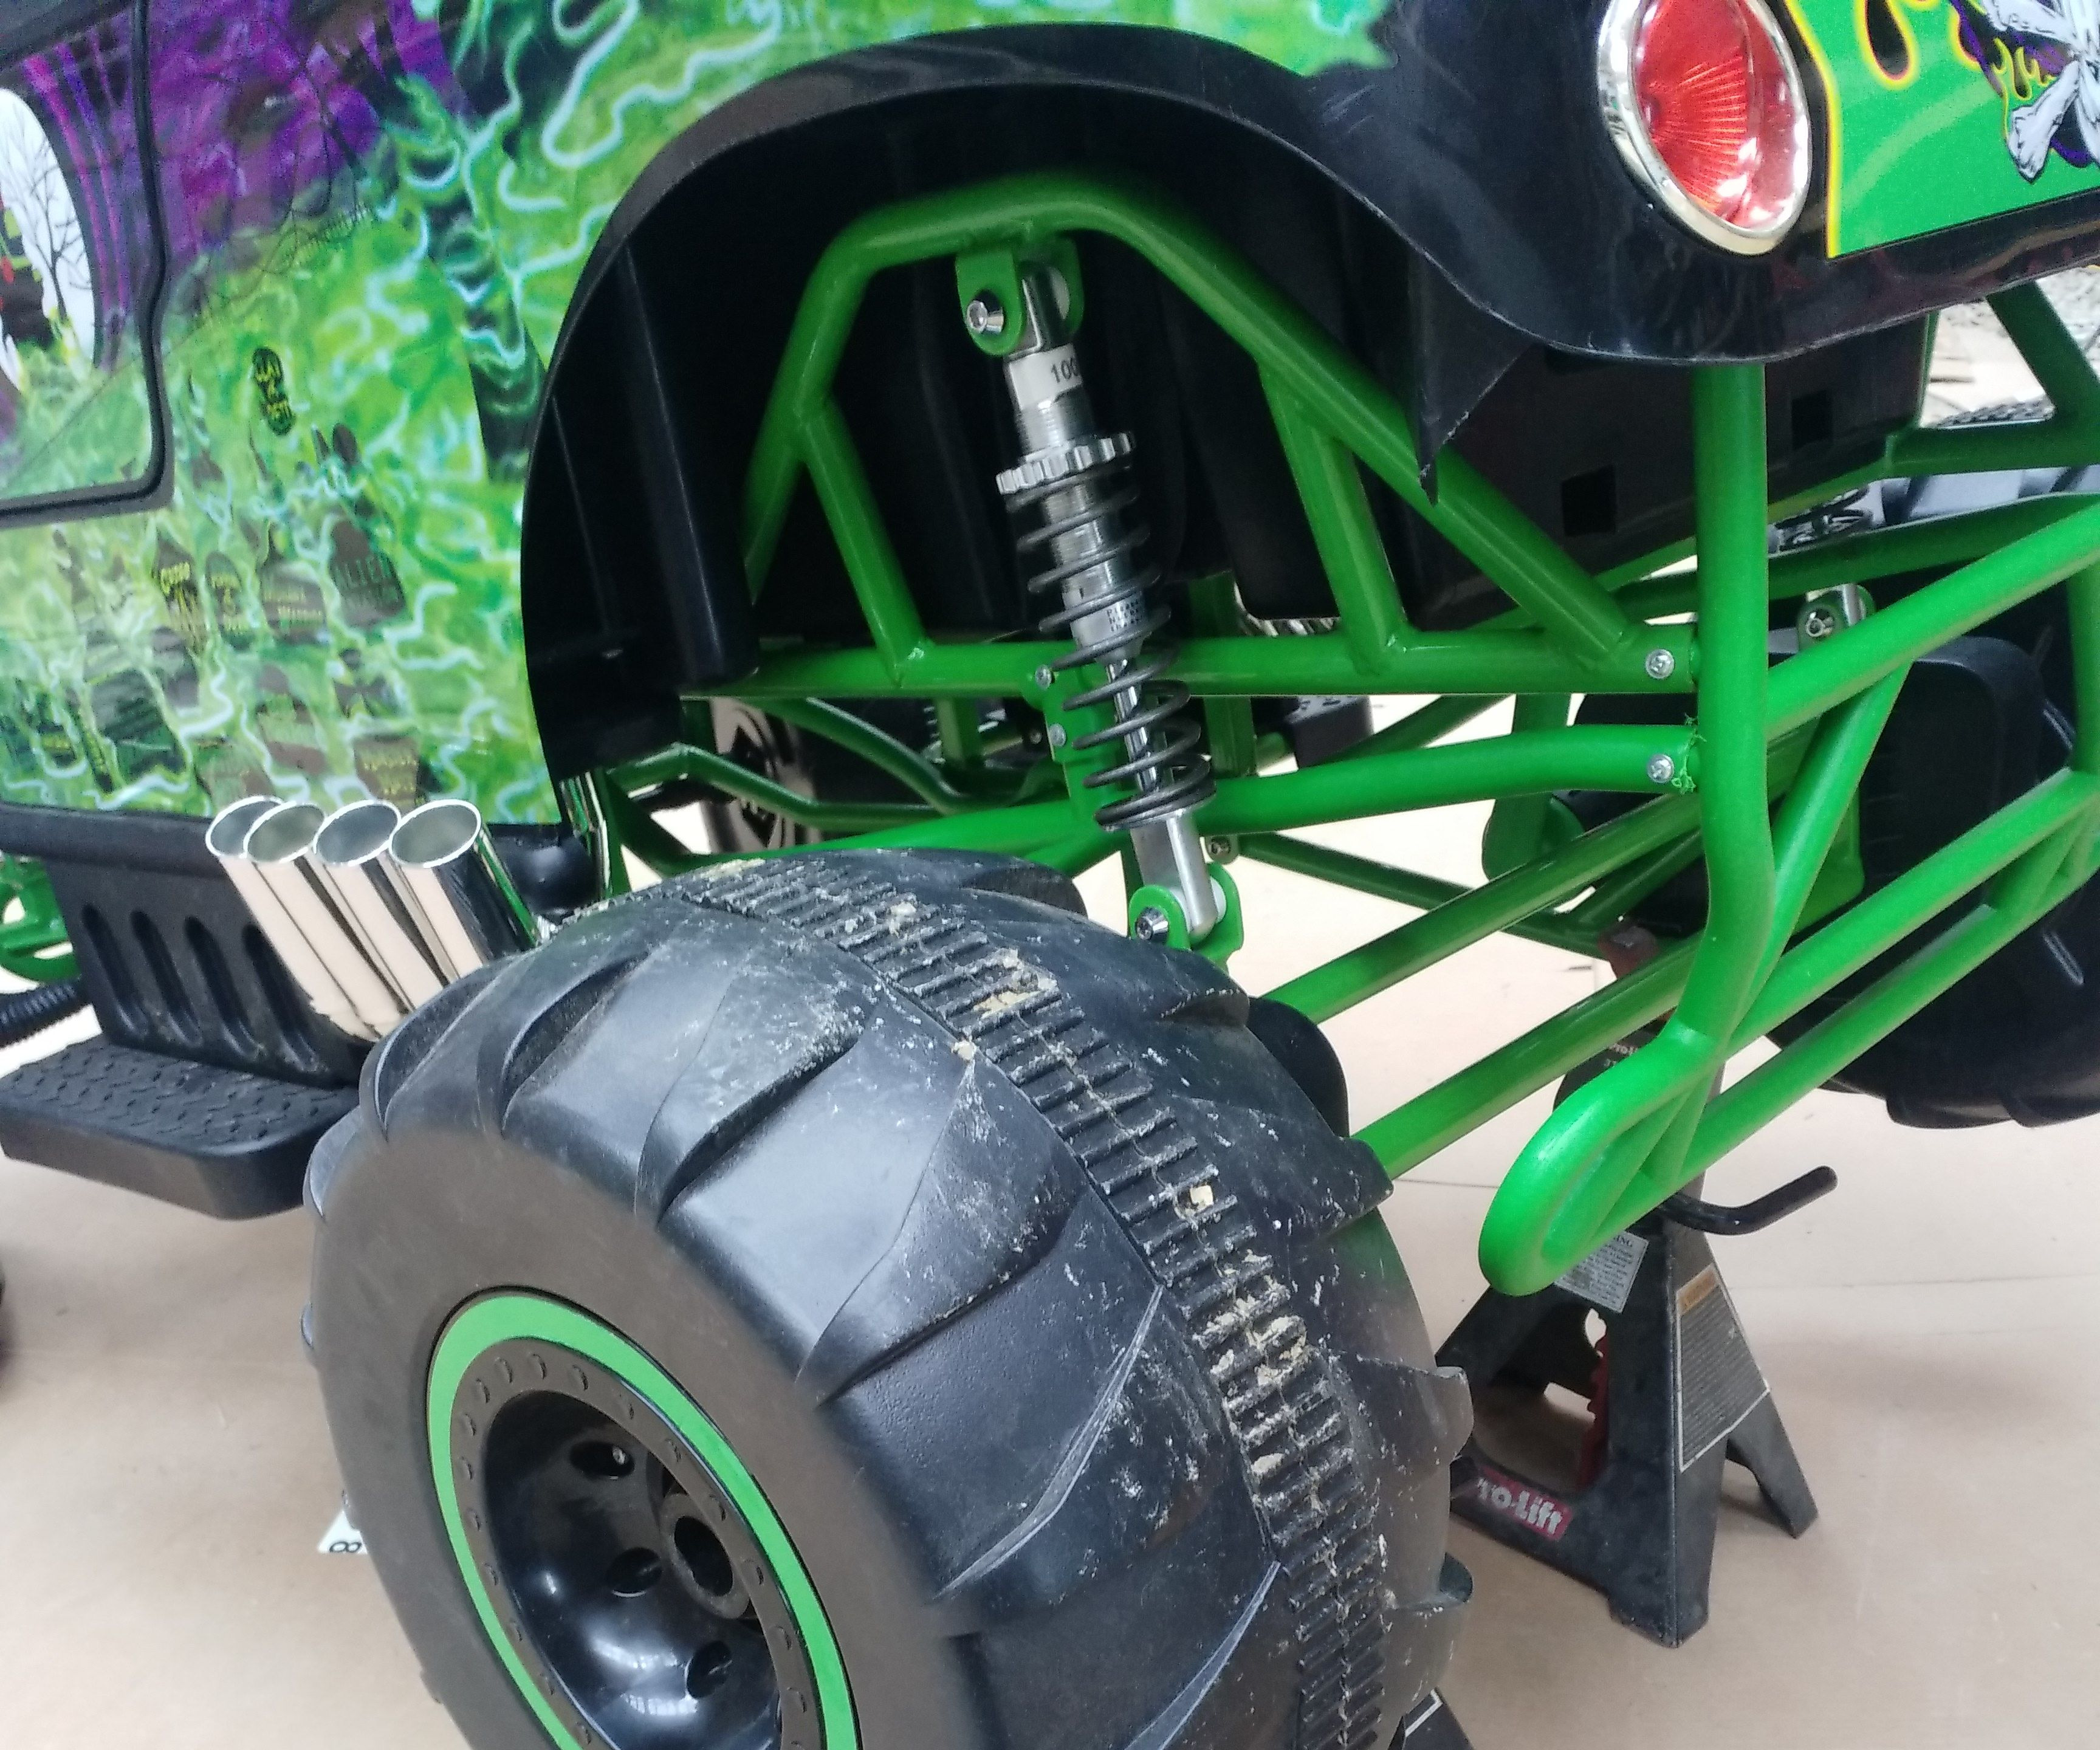 Soft Spring Upgrade On 24v Grave Digger Power Wheels 4 Steps With Pictures Instructables